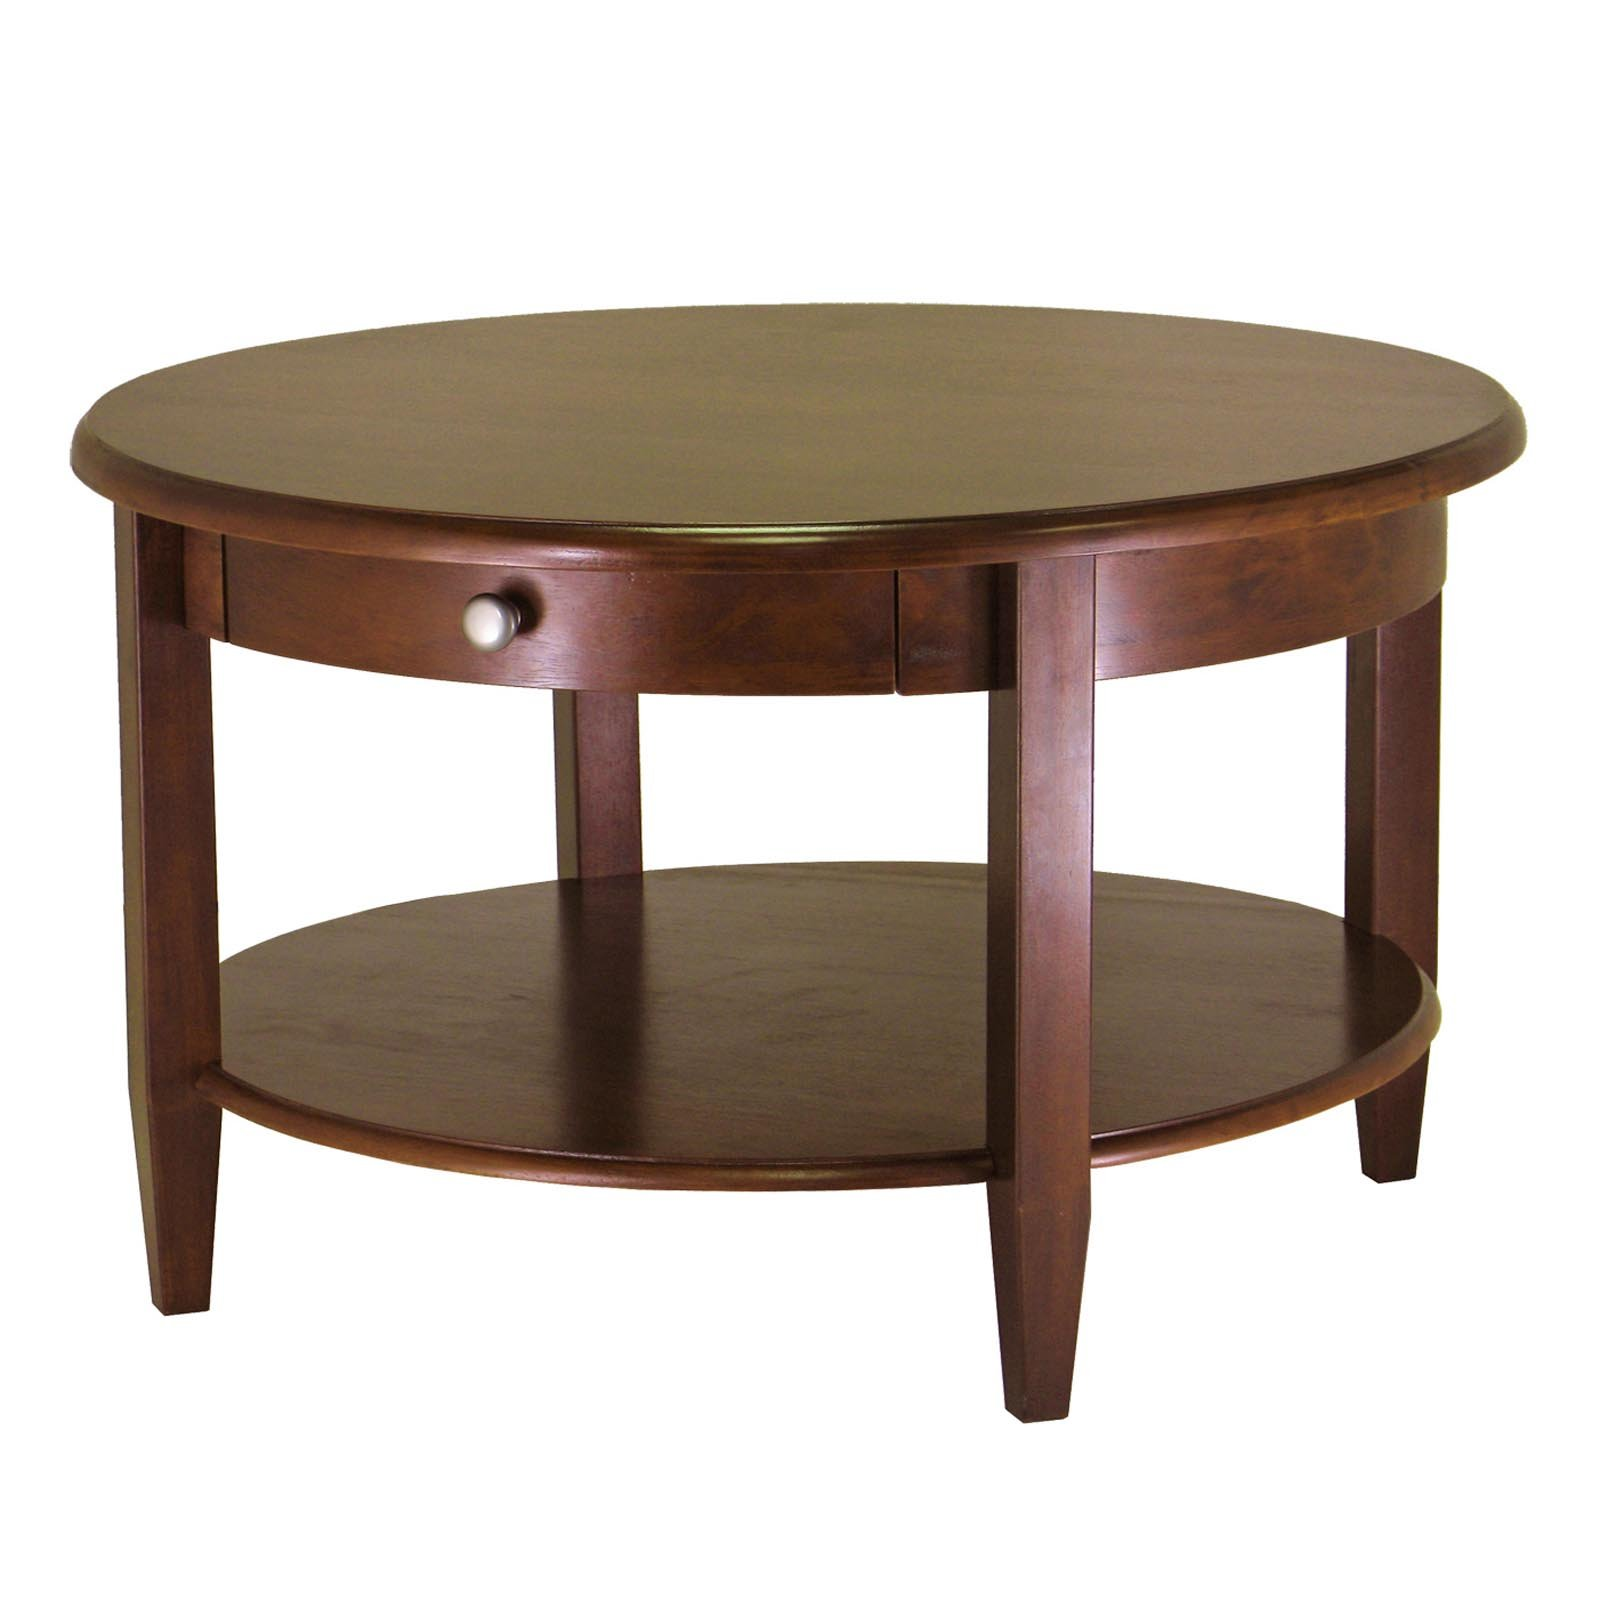 Showing s of Dark Brown Round Coffee Table Set View 6 of 10